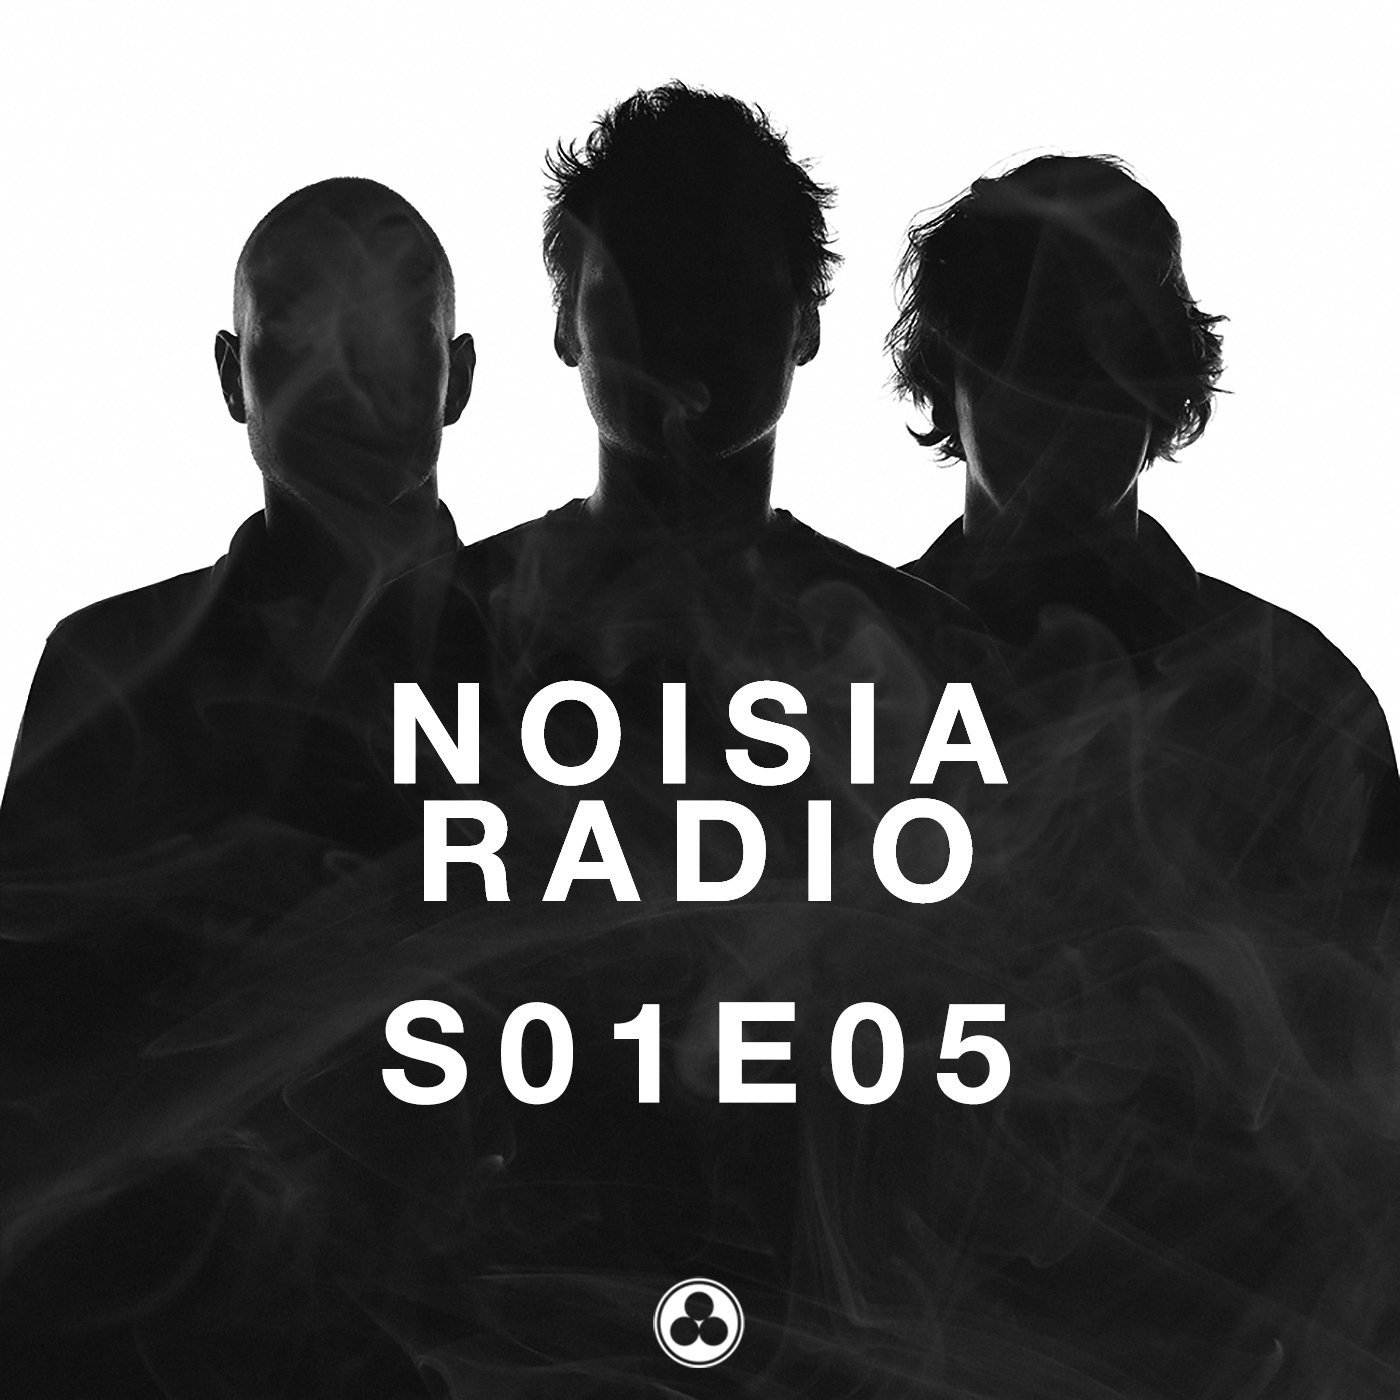 Noisia Radio S01E05